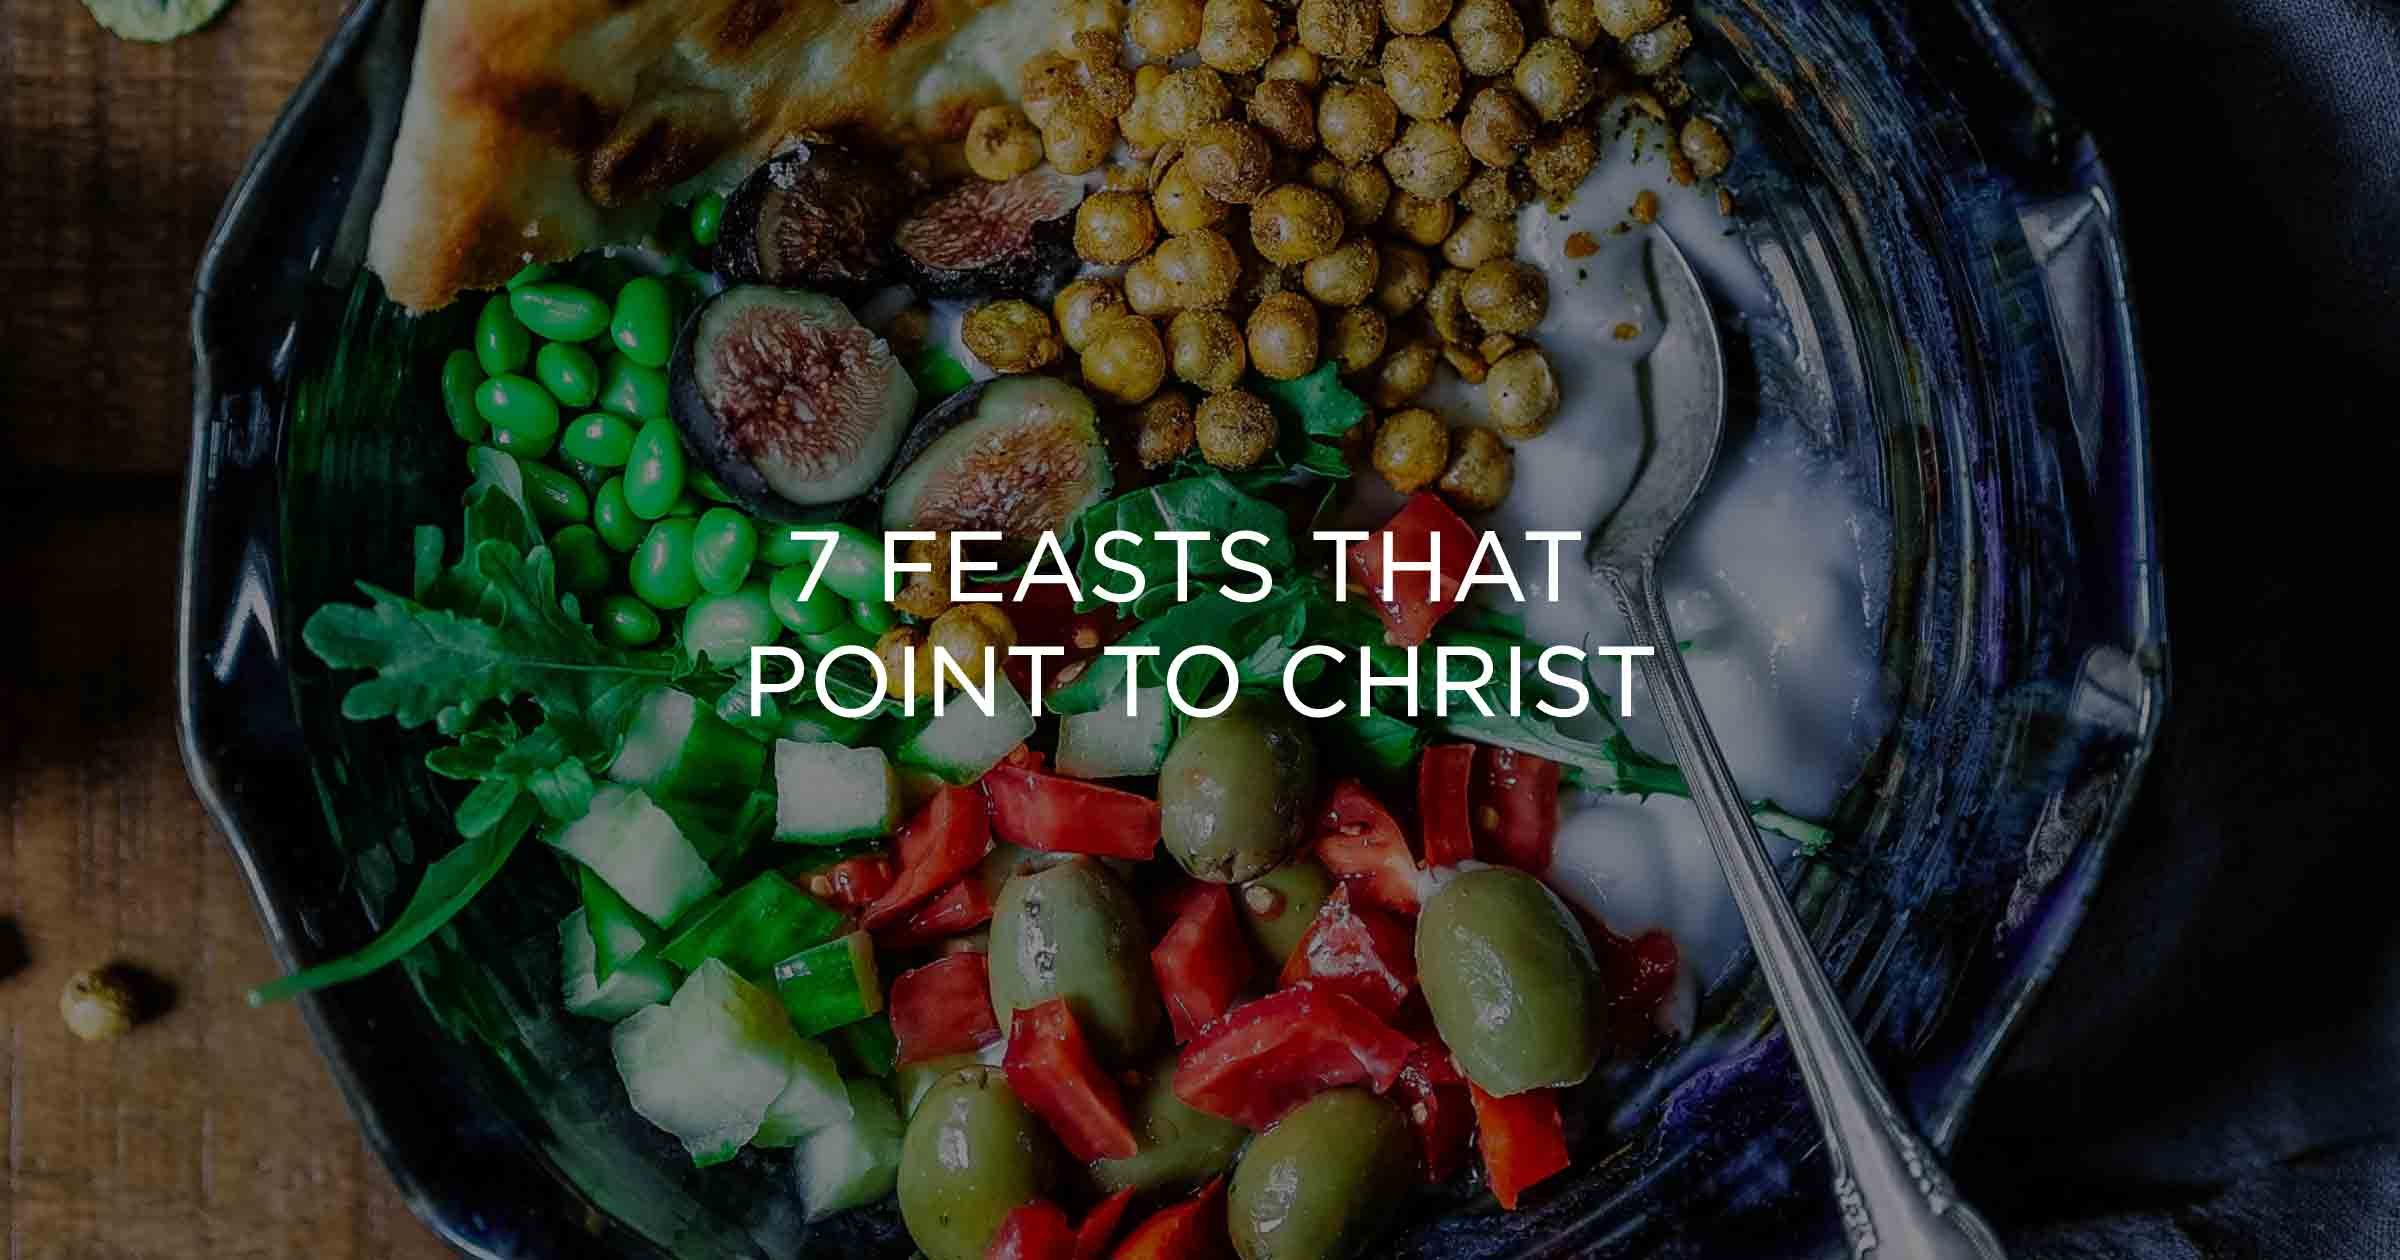 7 Feasts that Point to Christ | Wycliffe Bible Translators